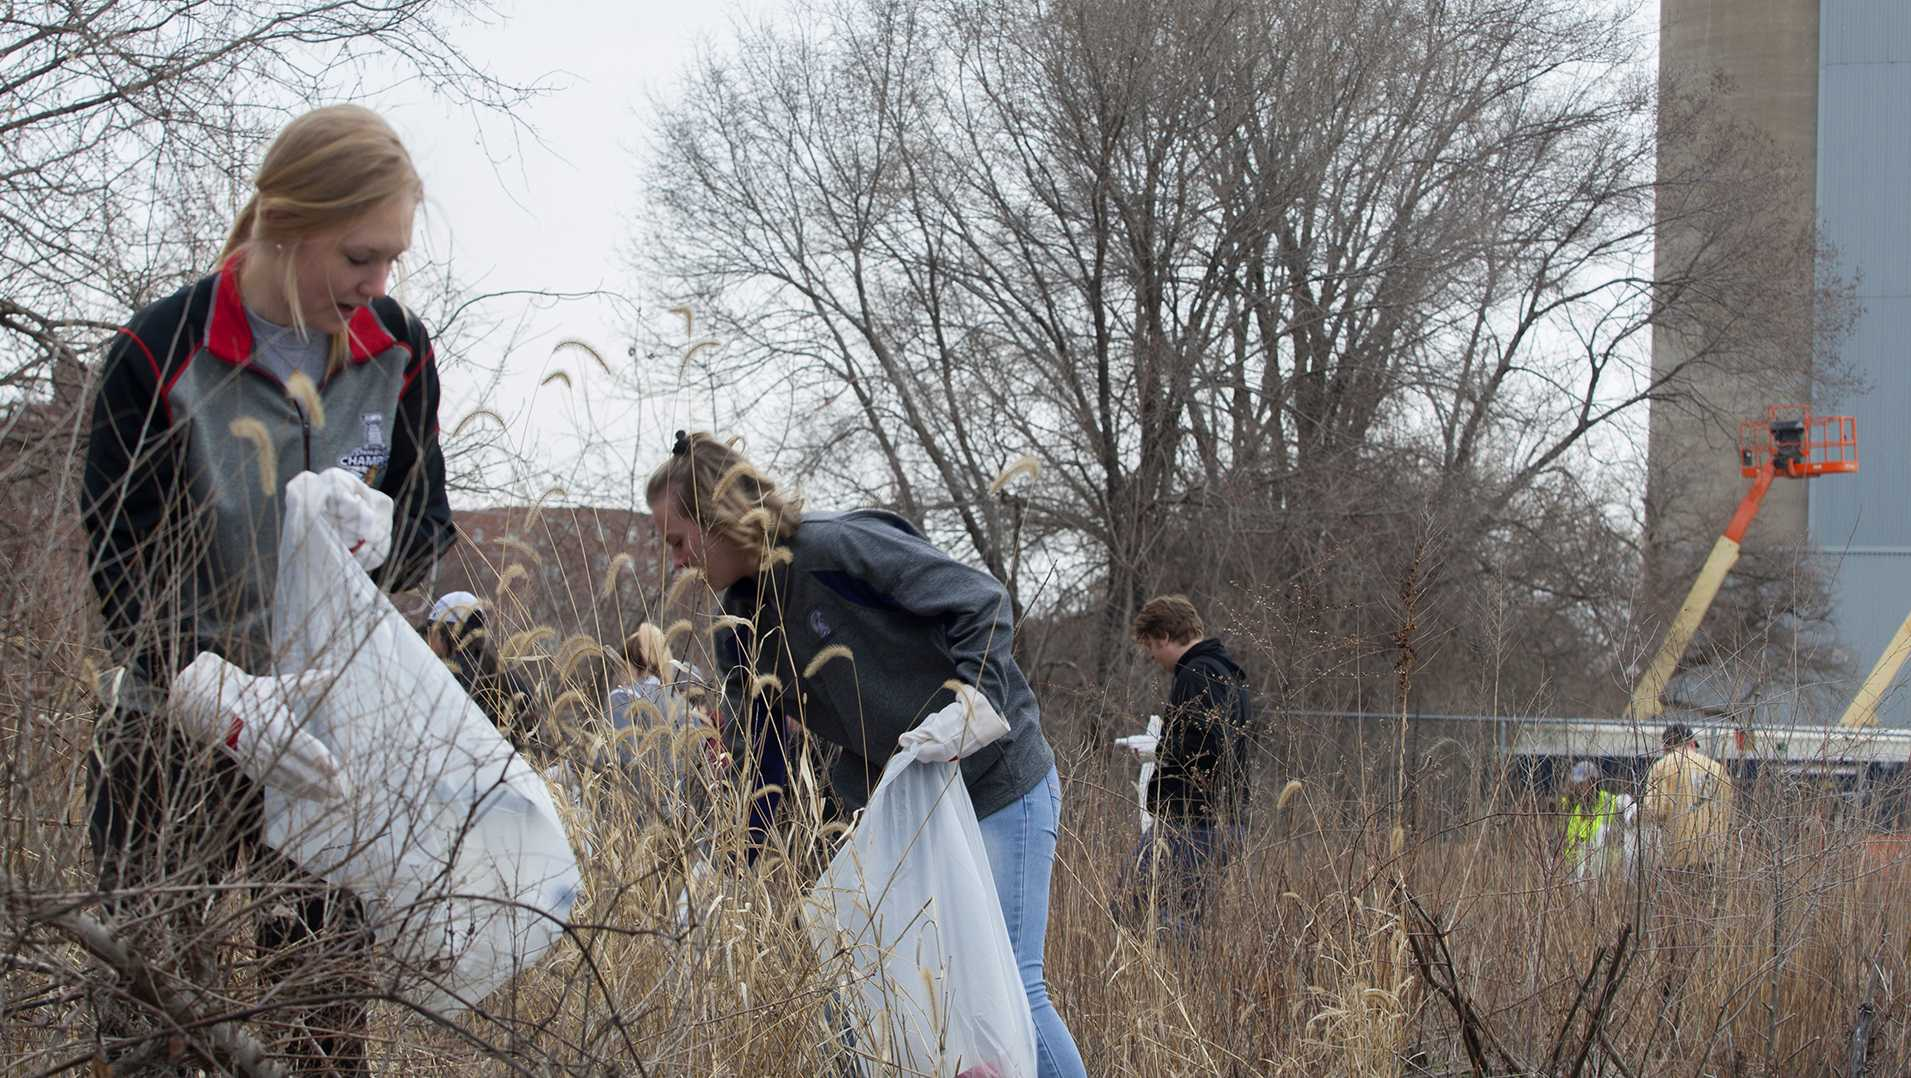 From left: Freshman Emma Rotz and Freshman Abby Thornton pick up trash by the Iowa River during IIHR's river clean up on Saturday Apr. 21, 2018. THe IIHR hosted an Earth Day event during which community members were invited to come pick up trash along the Iowa River. (Katie Goodale/The Daily Iowan)